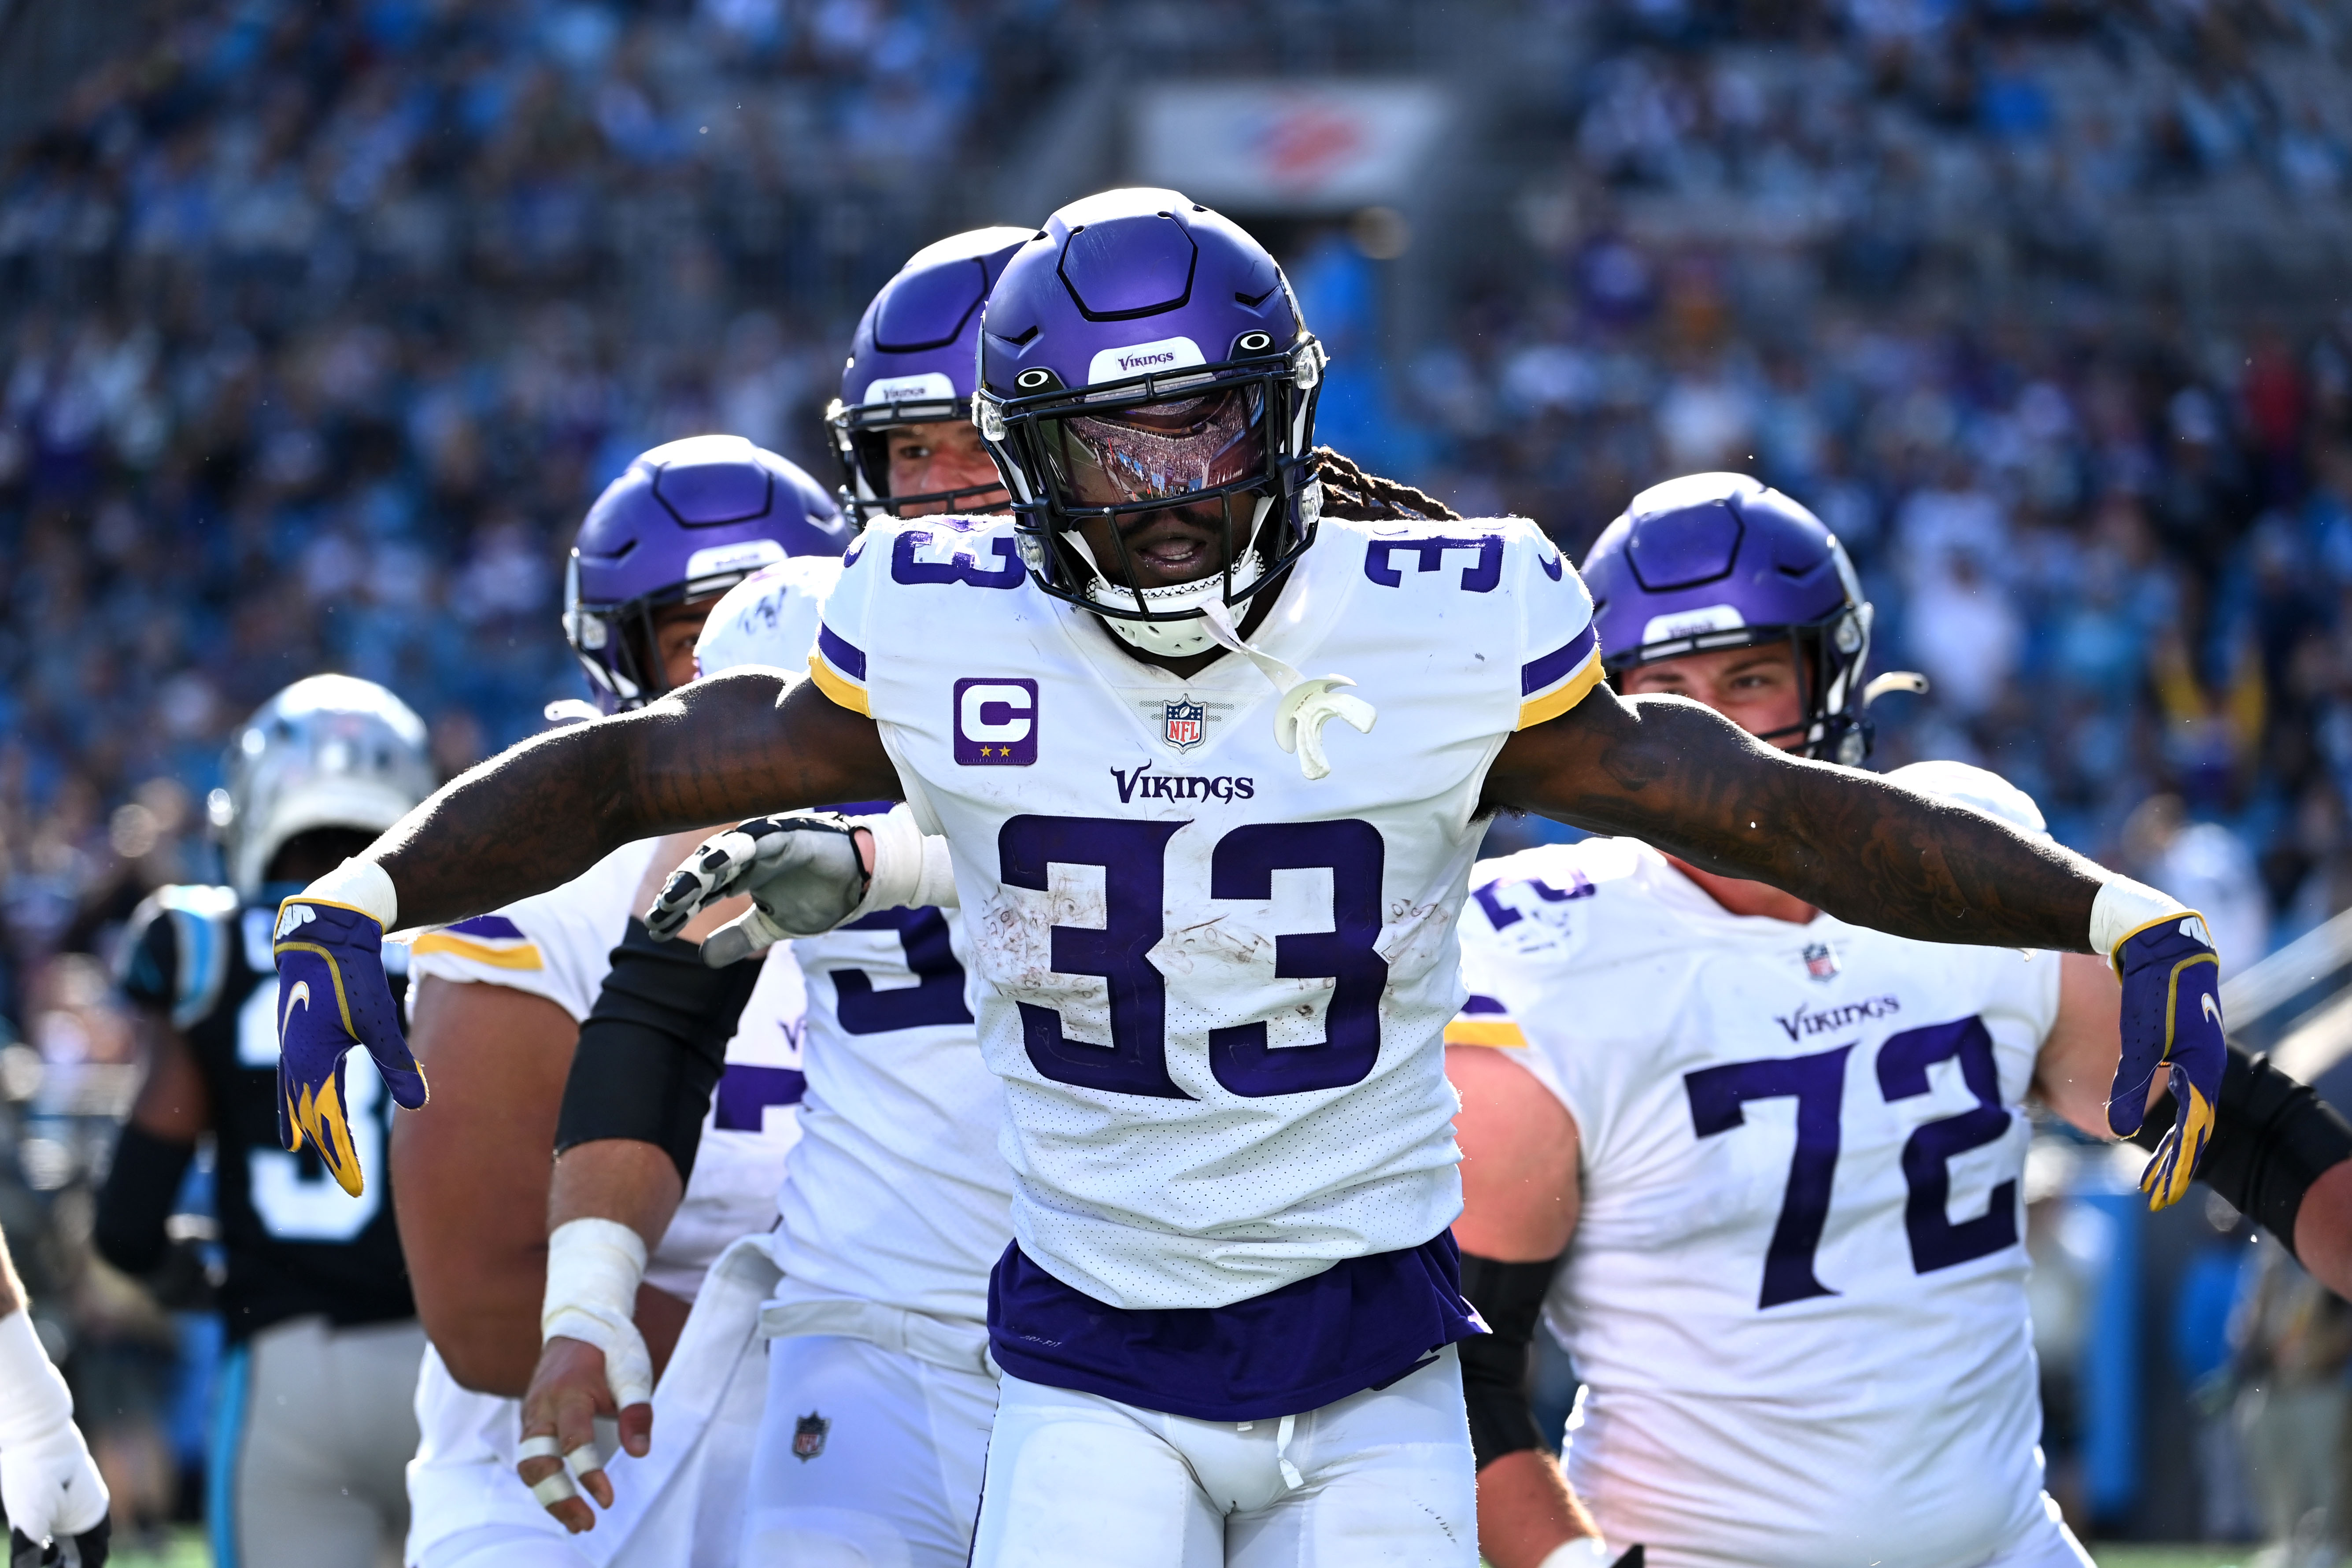 Minnesota Vikings running back Dalvin Cook (33) reacts after scoring a touchdown in the third quarter at Bank of America Stadium.